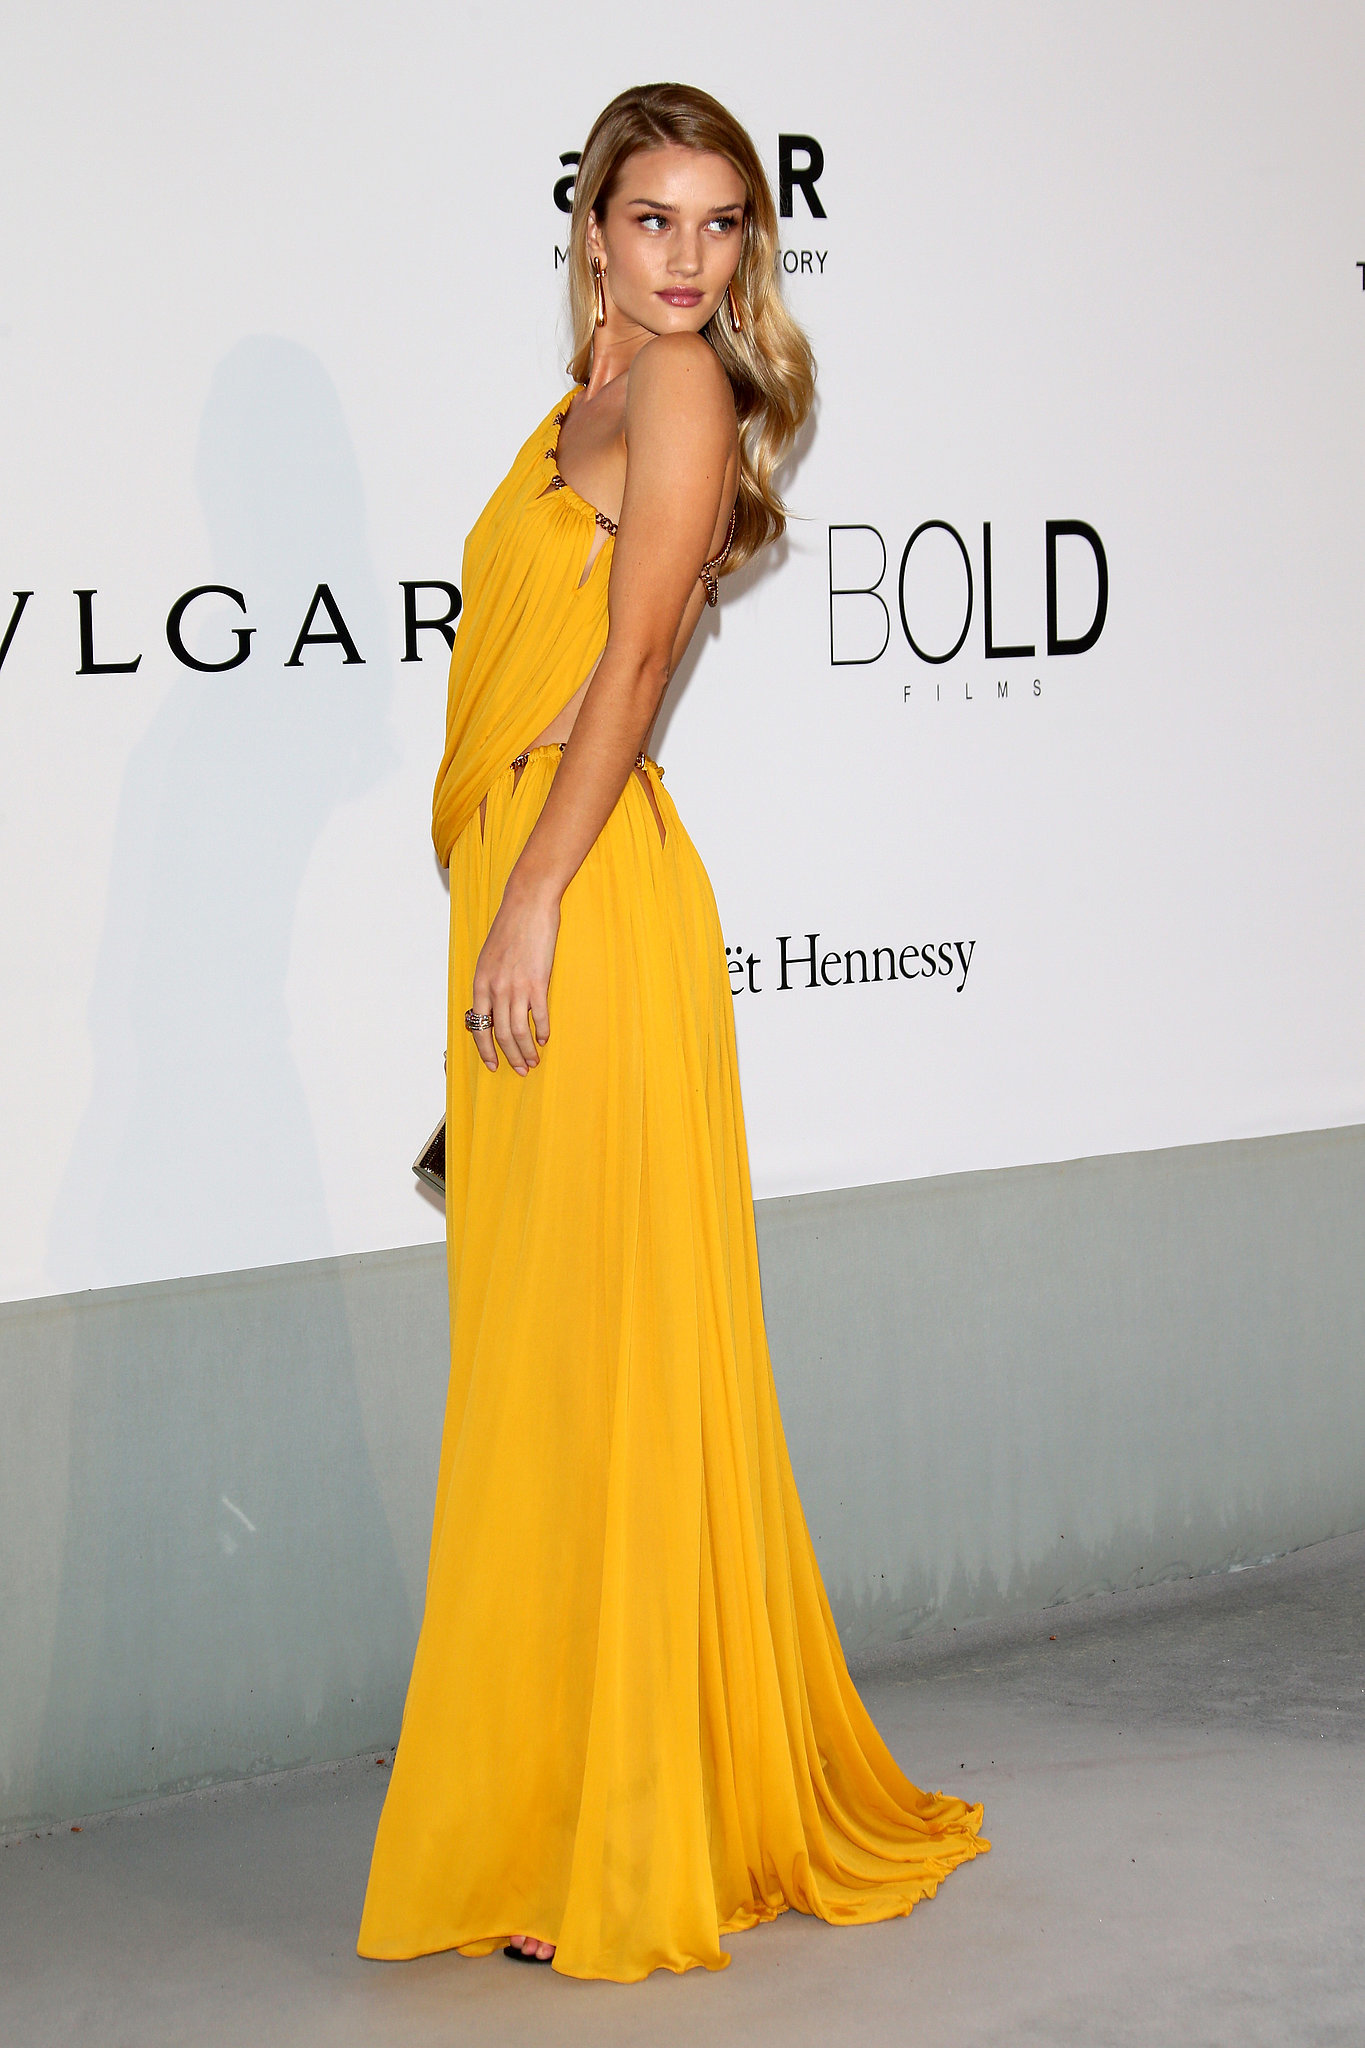 Rosie-Huntington-Whiteley-amfAR-Gala